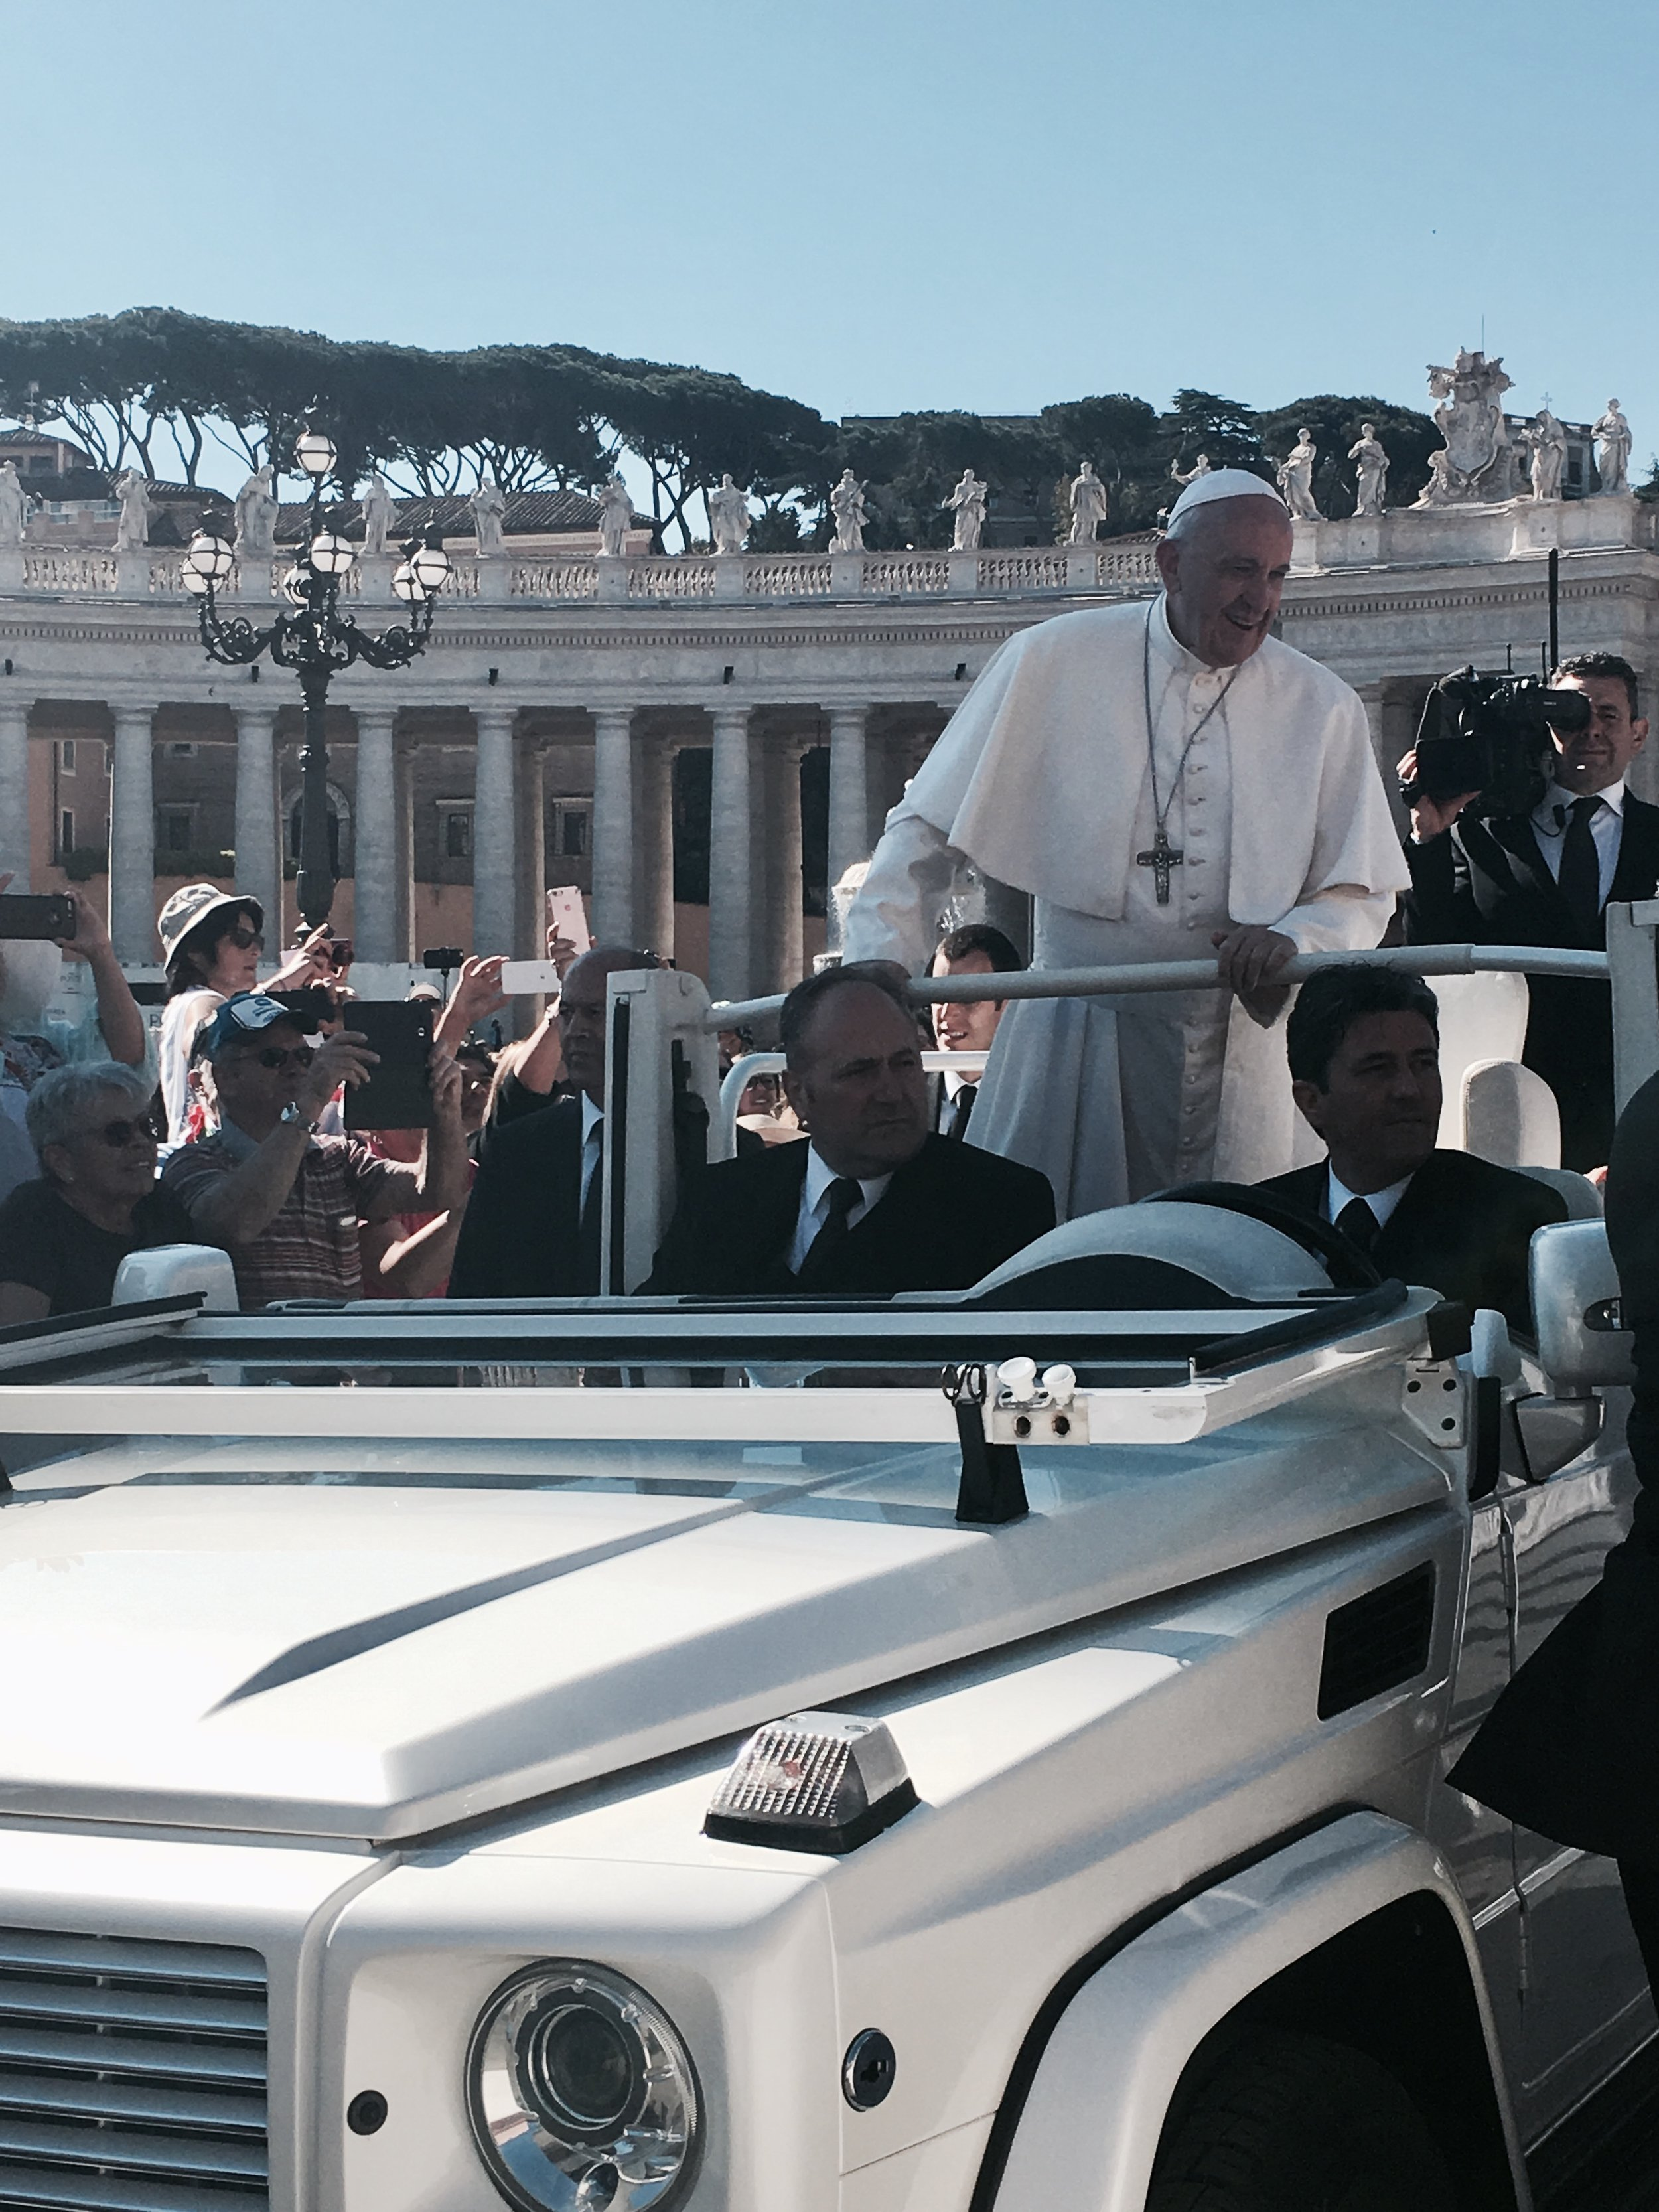 THE POPE!  Although I am not Catholic, this was such an incredible experience and is something I will never forget.